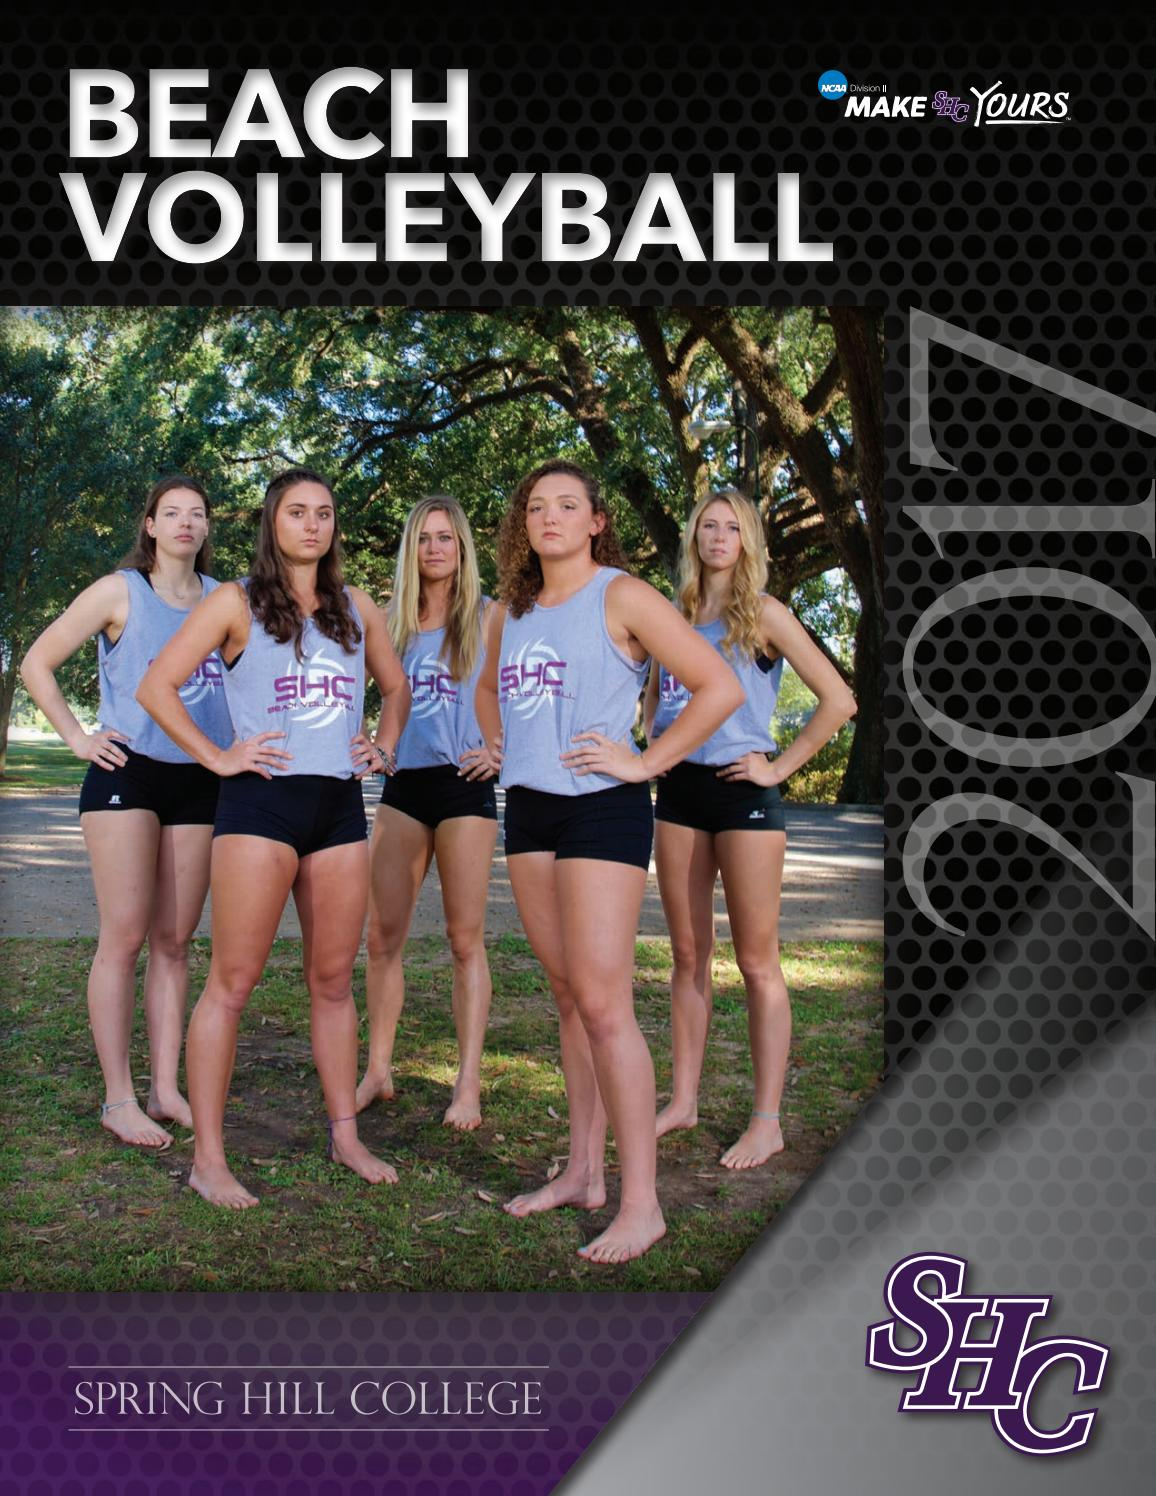 Spring Hill College Beach Volleyball 2017 By Spring Hill College Issuu